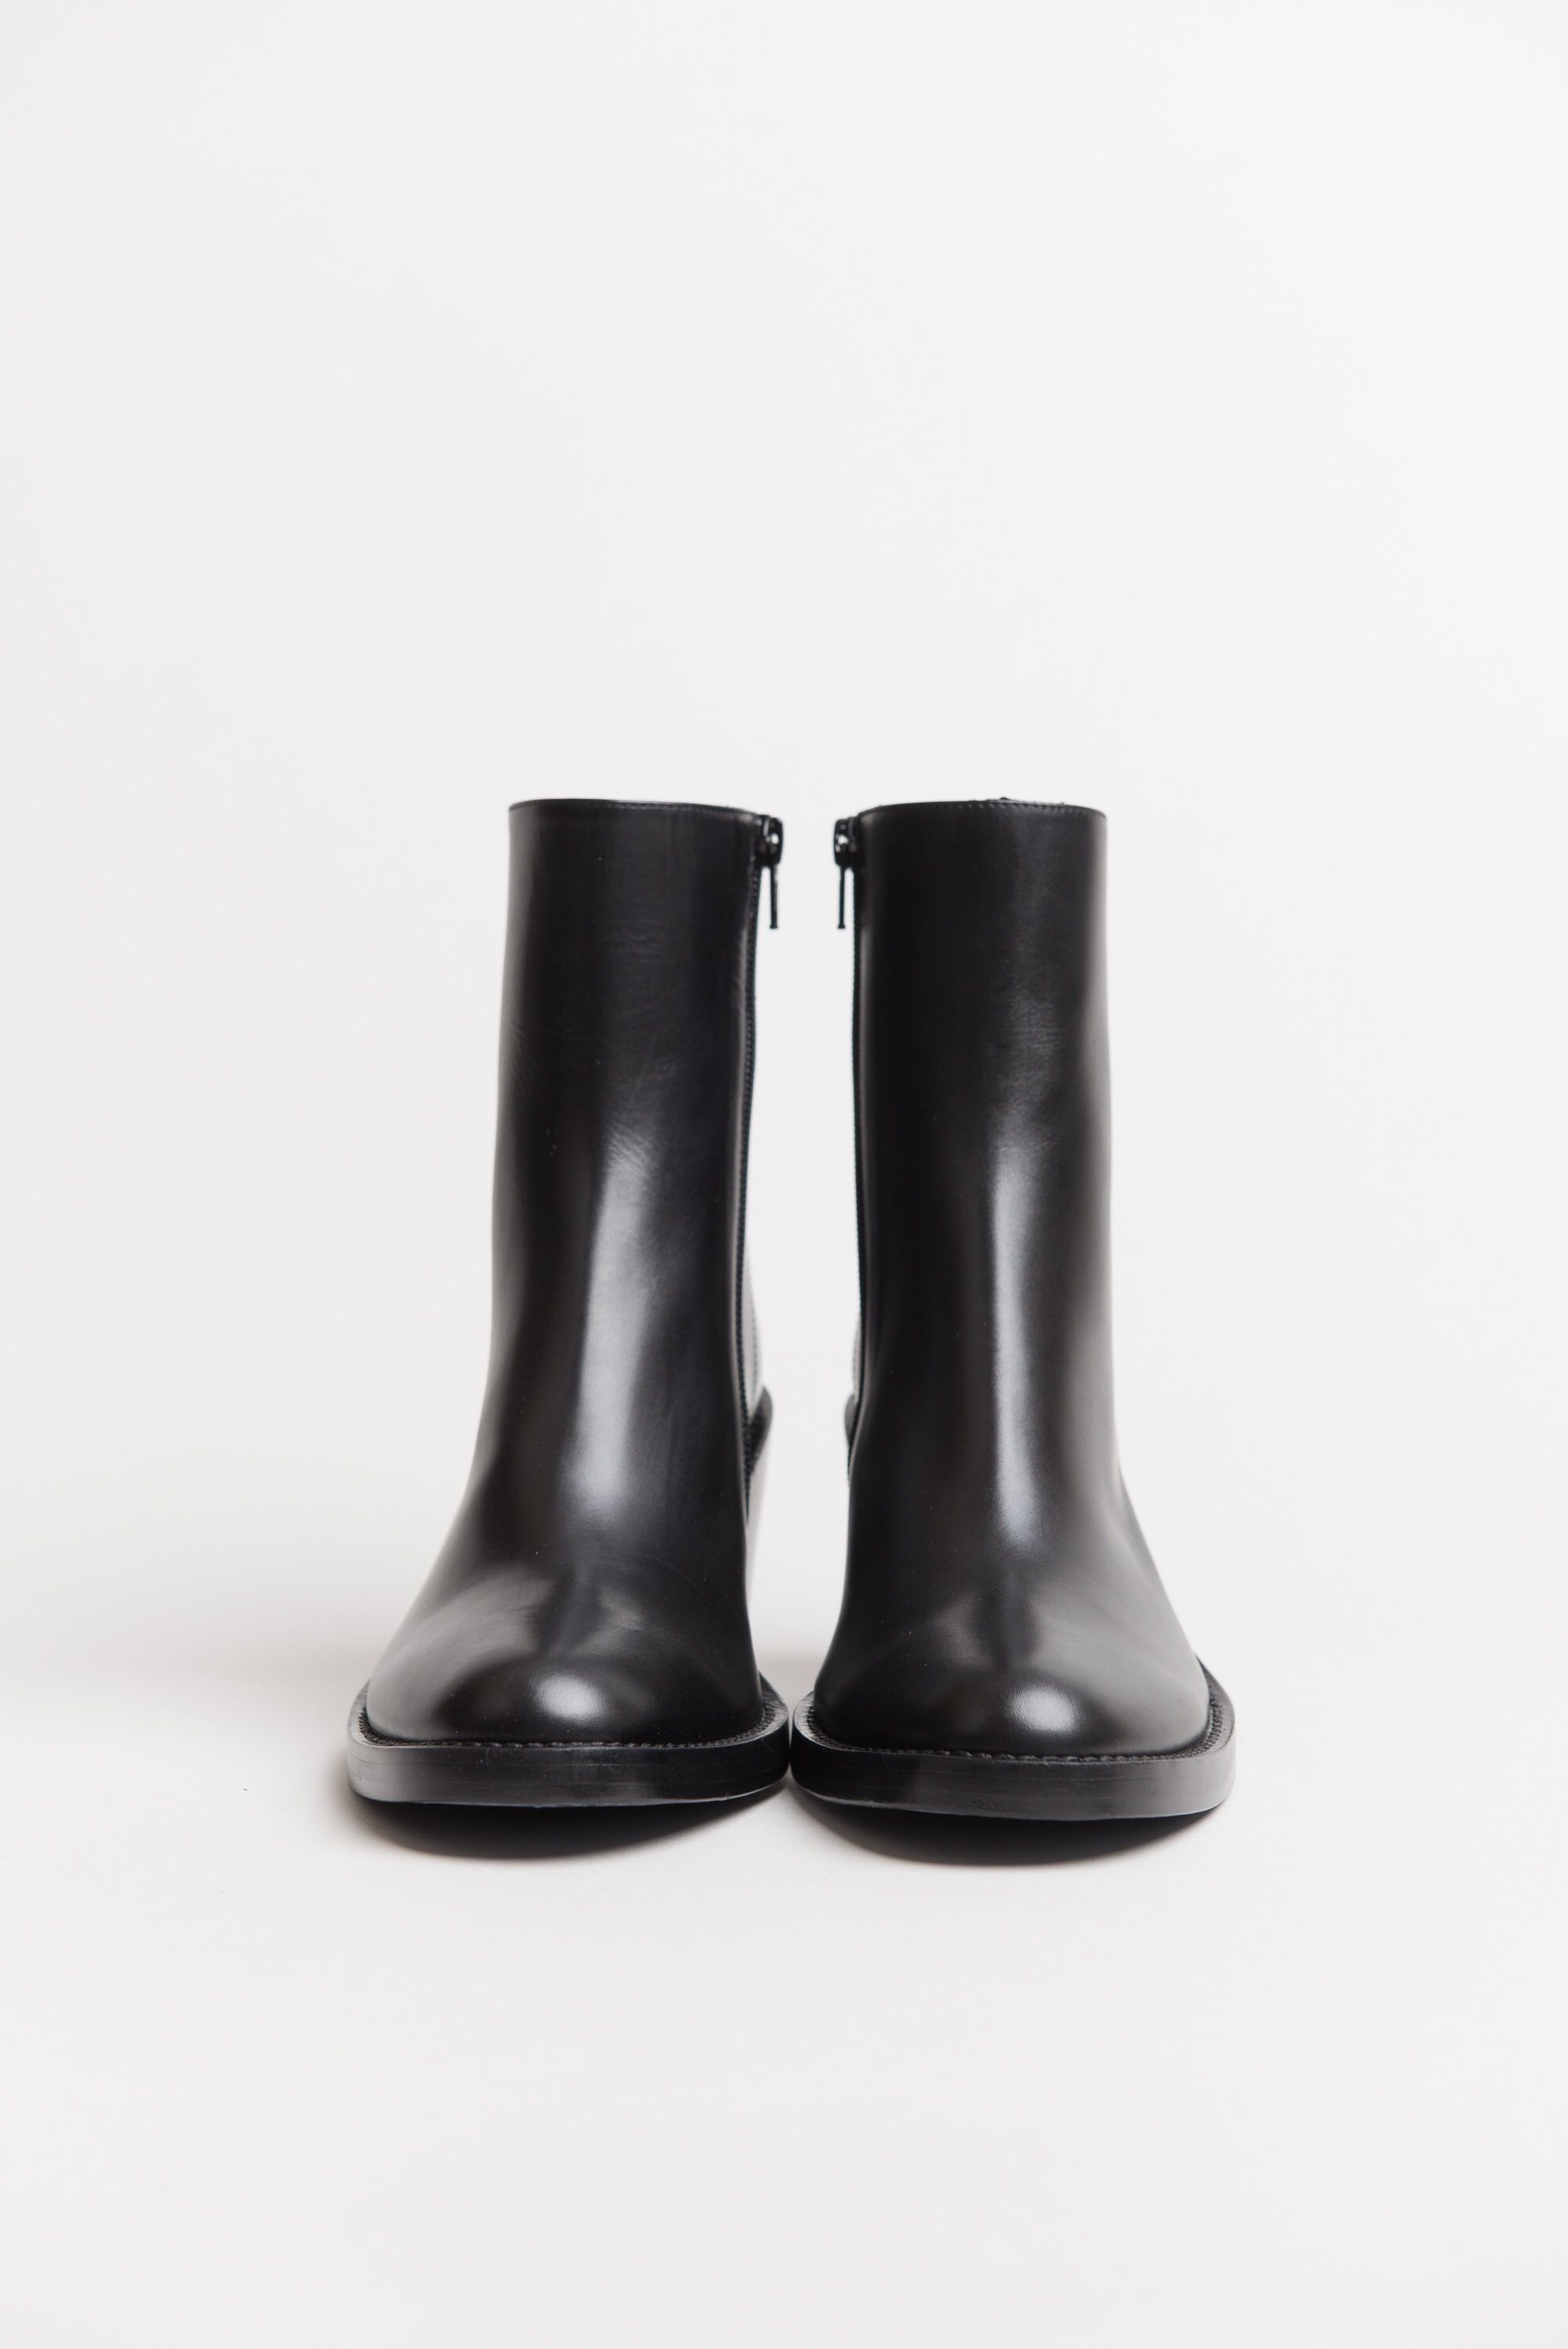 Ann Demeulemeester High Heel Boot Vitello Fine Nero Boots High Heel Boots High Leather Boots